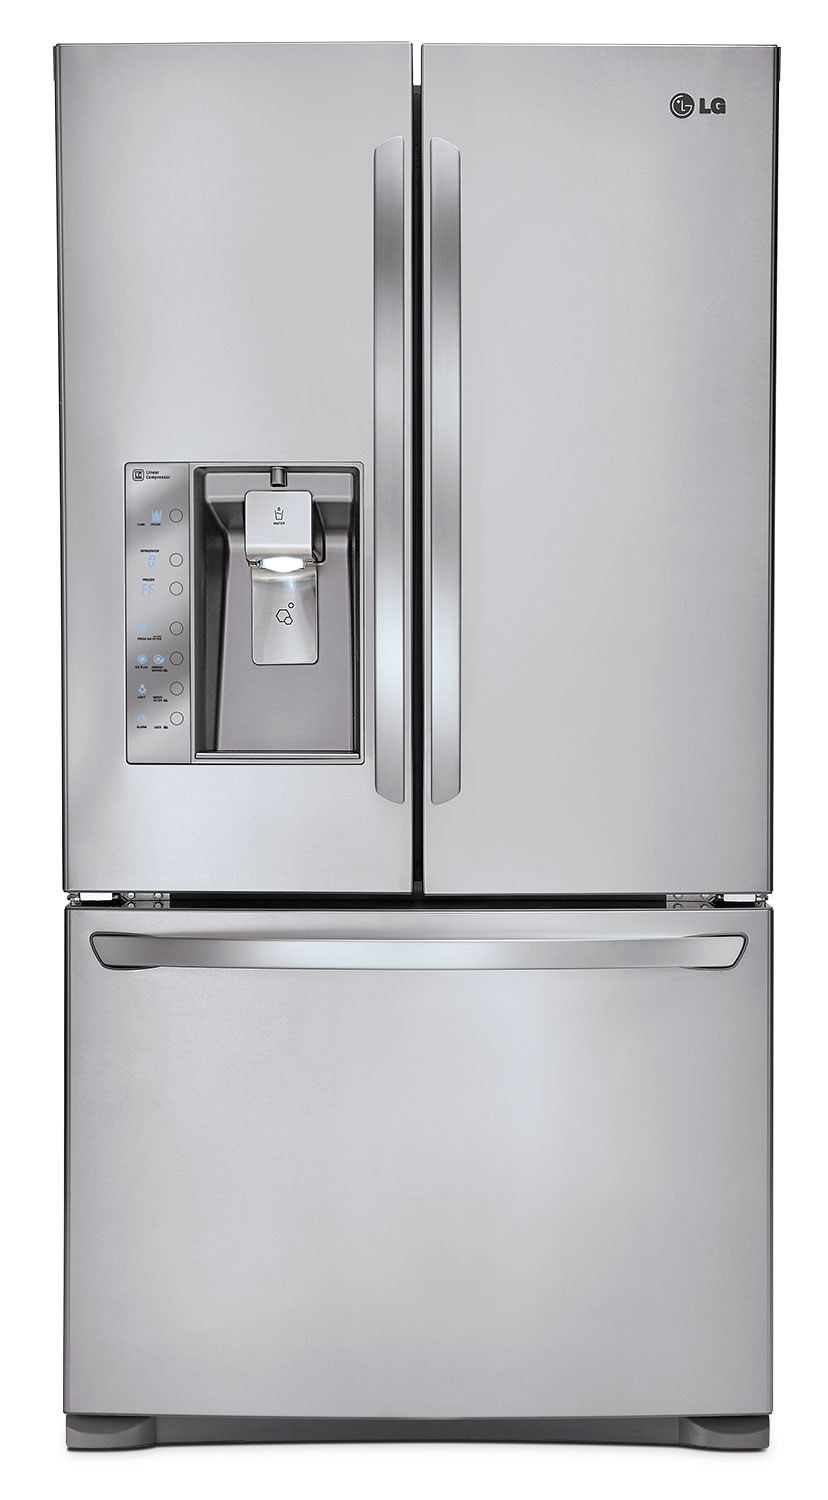 Lg Appliances Stainless Steel French Door Refrigerator 24